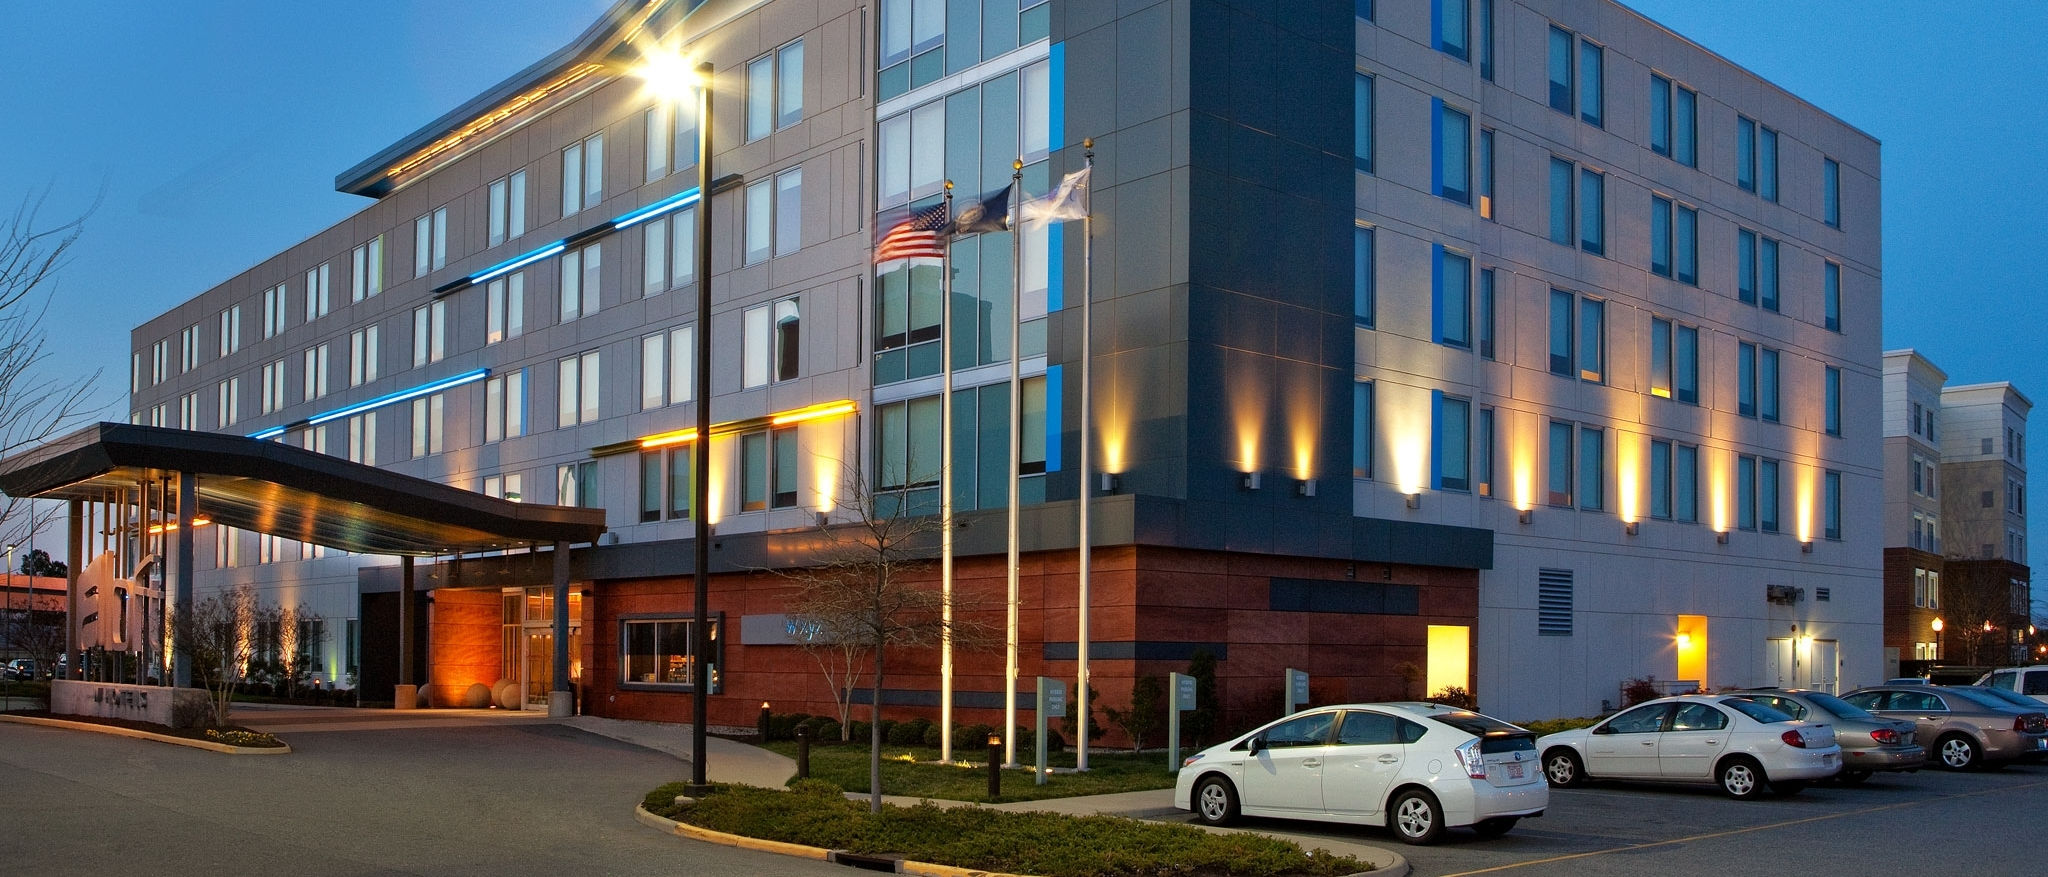 Aloft Chesapeake - Hotel Exterior